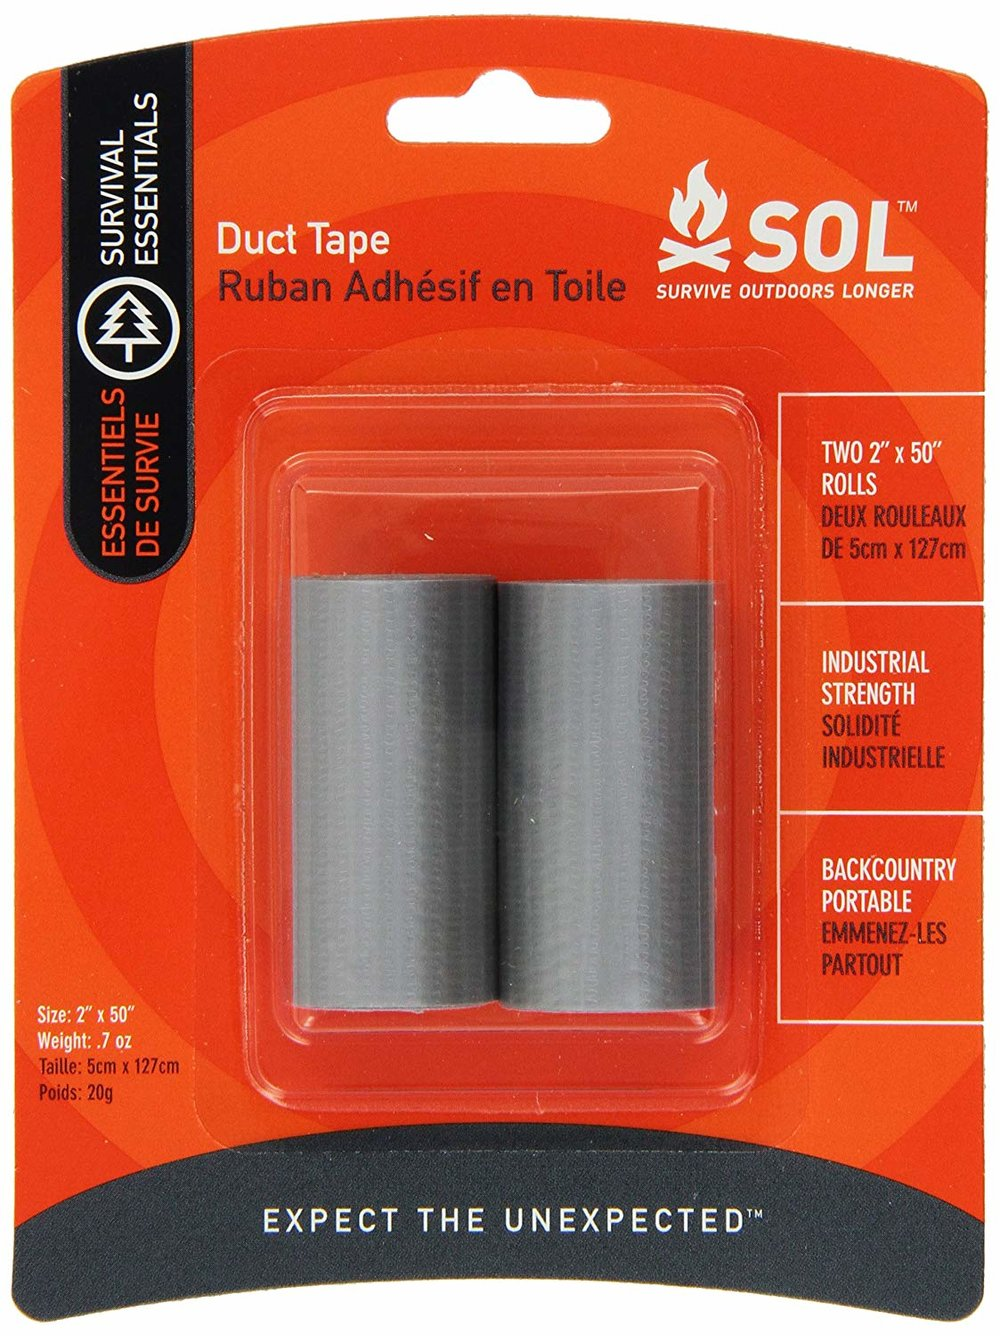 Duct Tape - I bet if you look hard enough, you probably have a roll hanging out in the garage. Make a few wraps of it around your trekking poles so it's on hand and ready to go when you need it. It can repair all kinds of things.